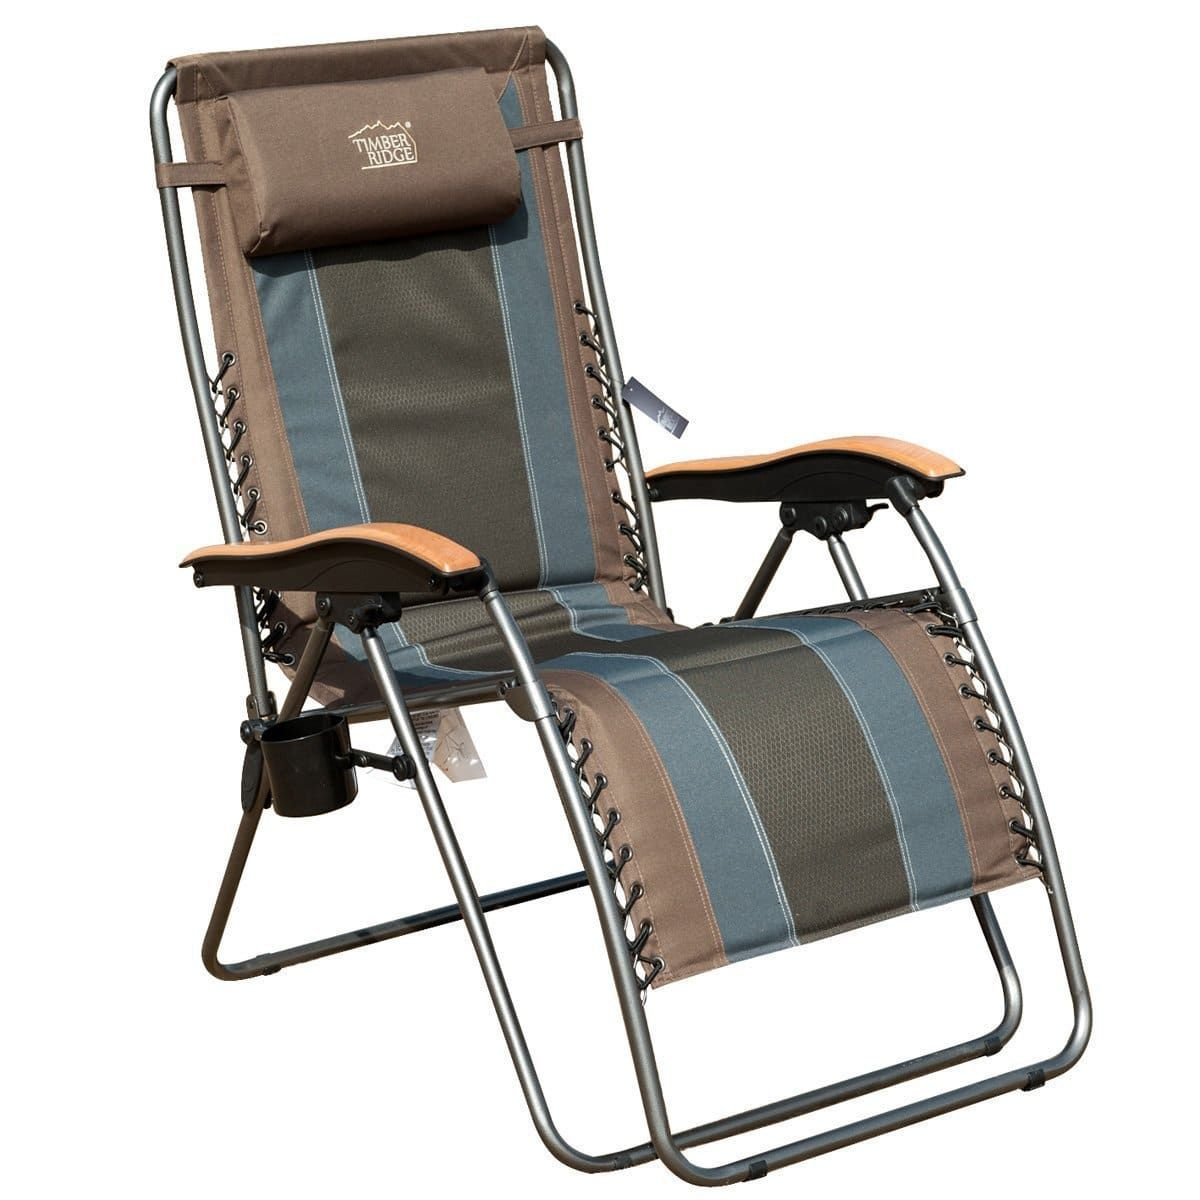 Top 10 Best Zero Gravity Chairs 2020 Reviews Buyer S Guide Outdoor Chairs Patio Lounge Chairs Zero Gravity Chair